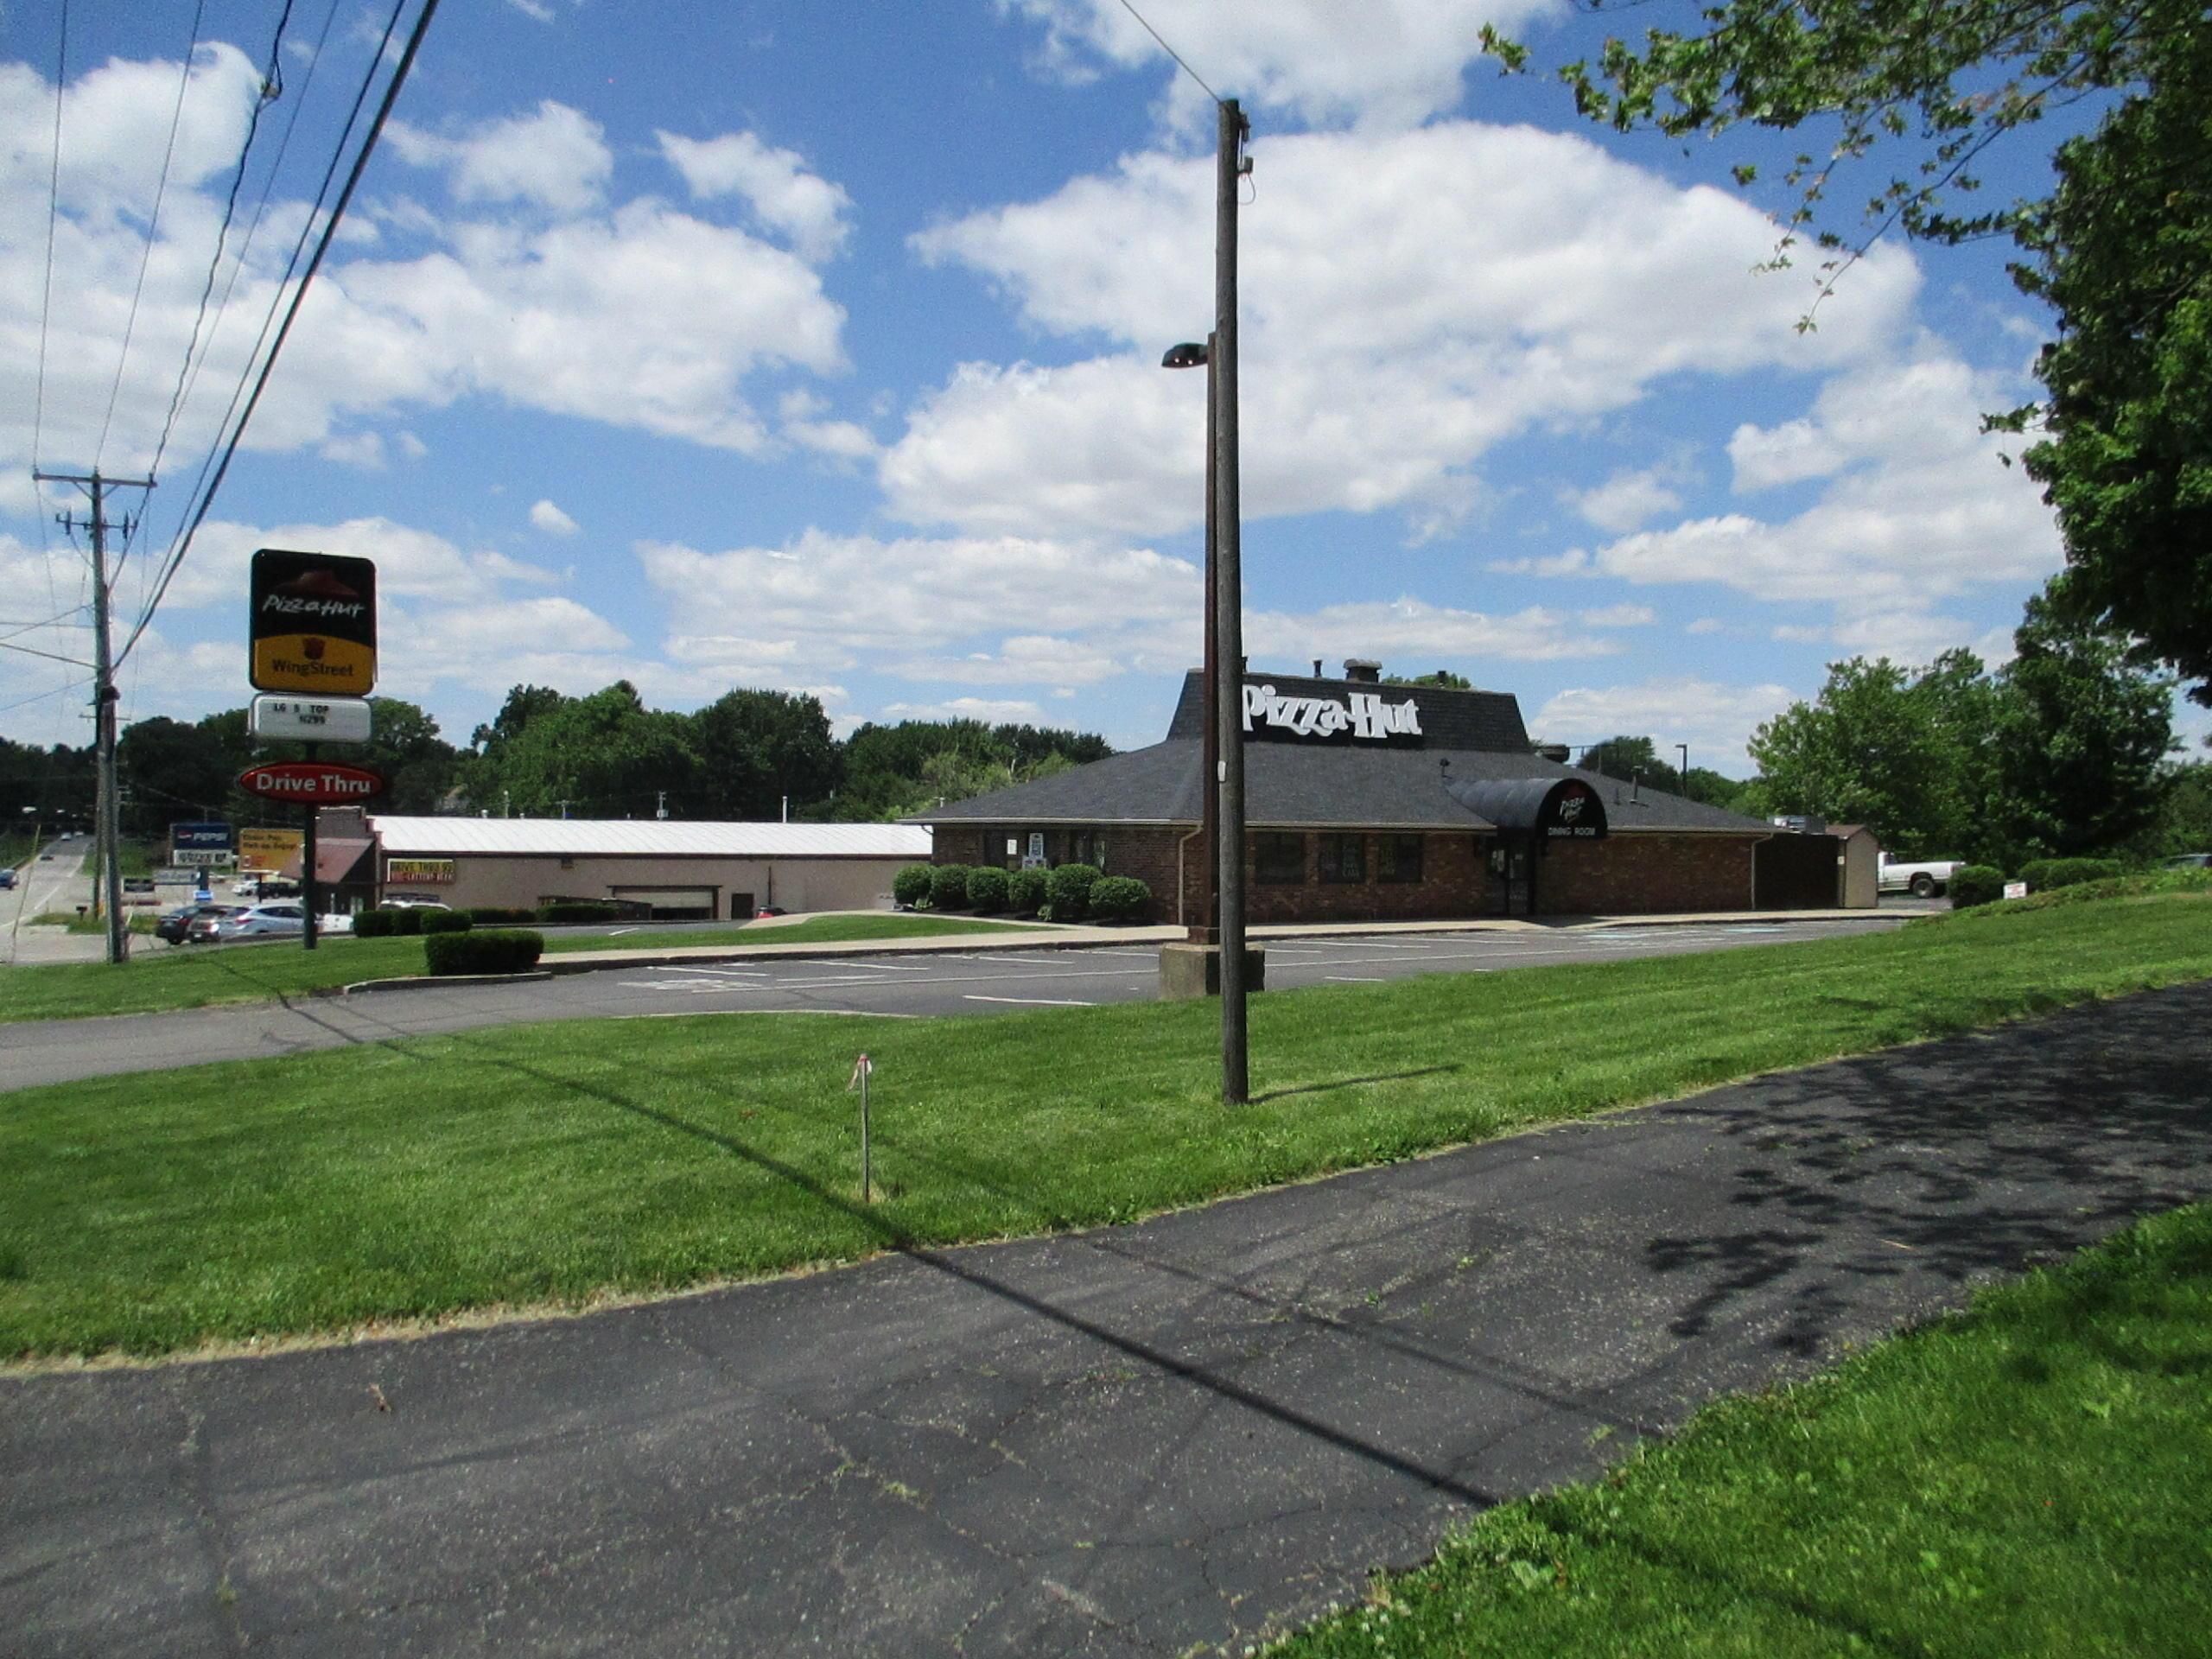 578 W Marion St  - 7665 CR 201 015